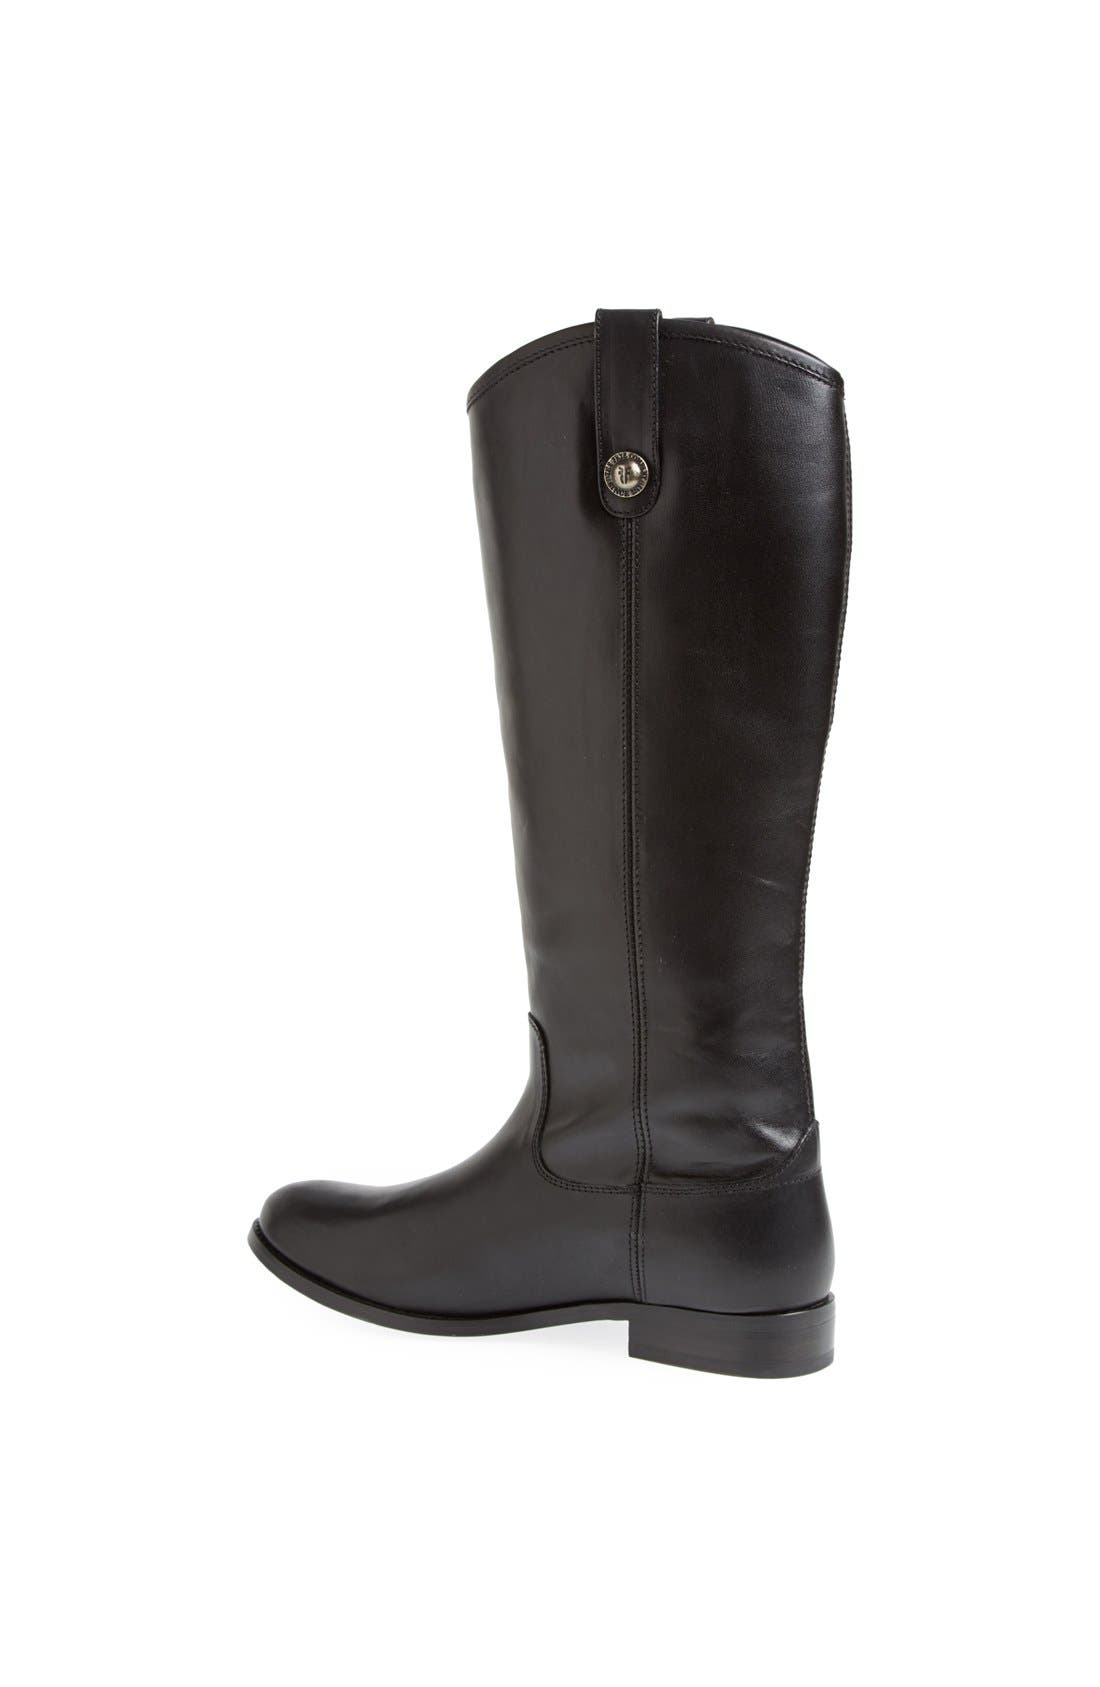 'Melissa Button' Leather Riding Boot,                             Alternate thumbnail 69, color,